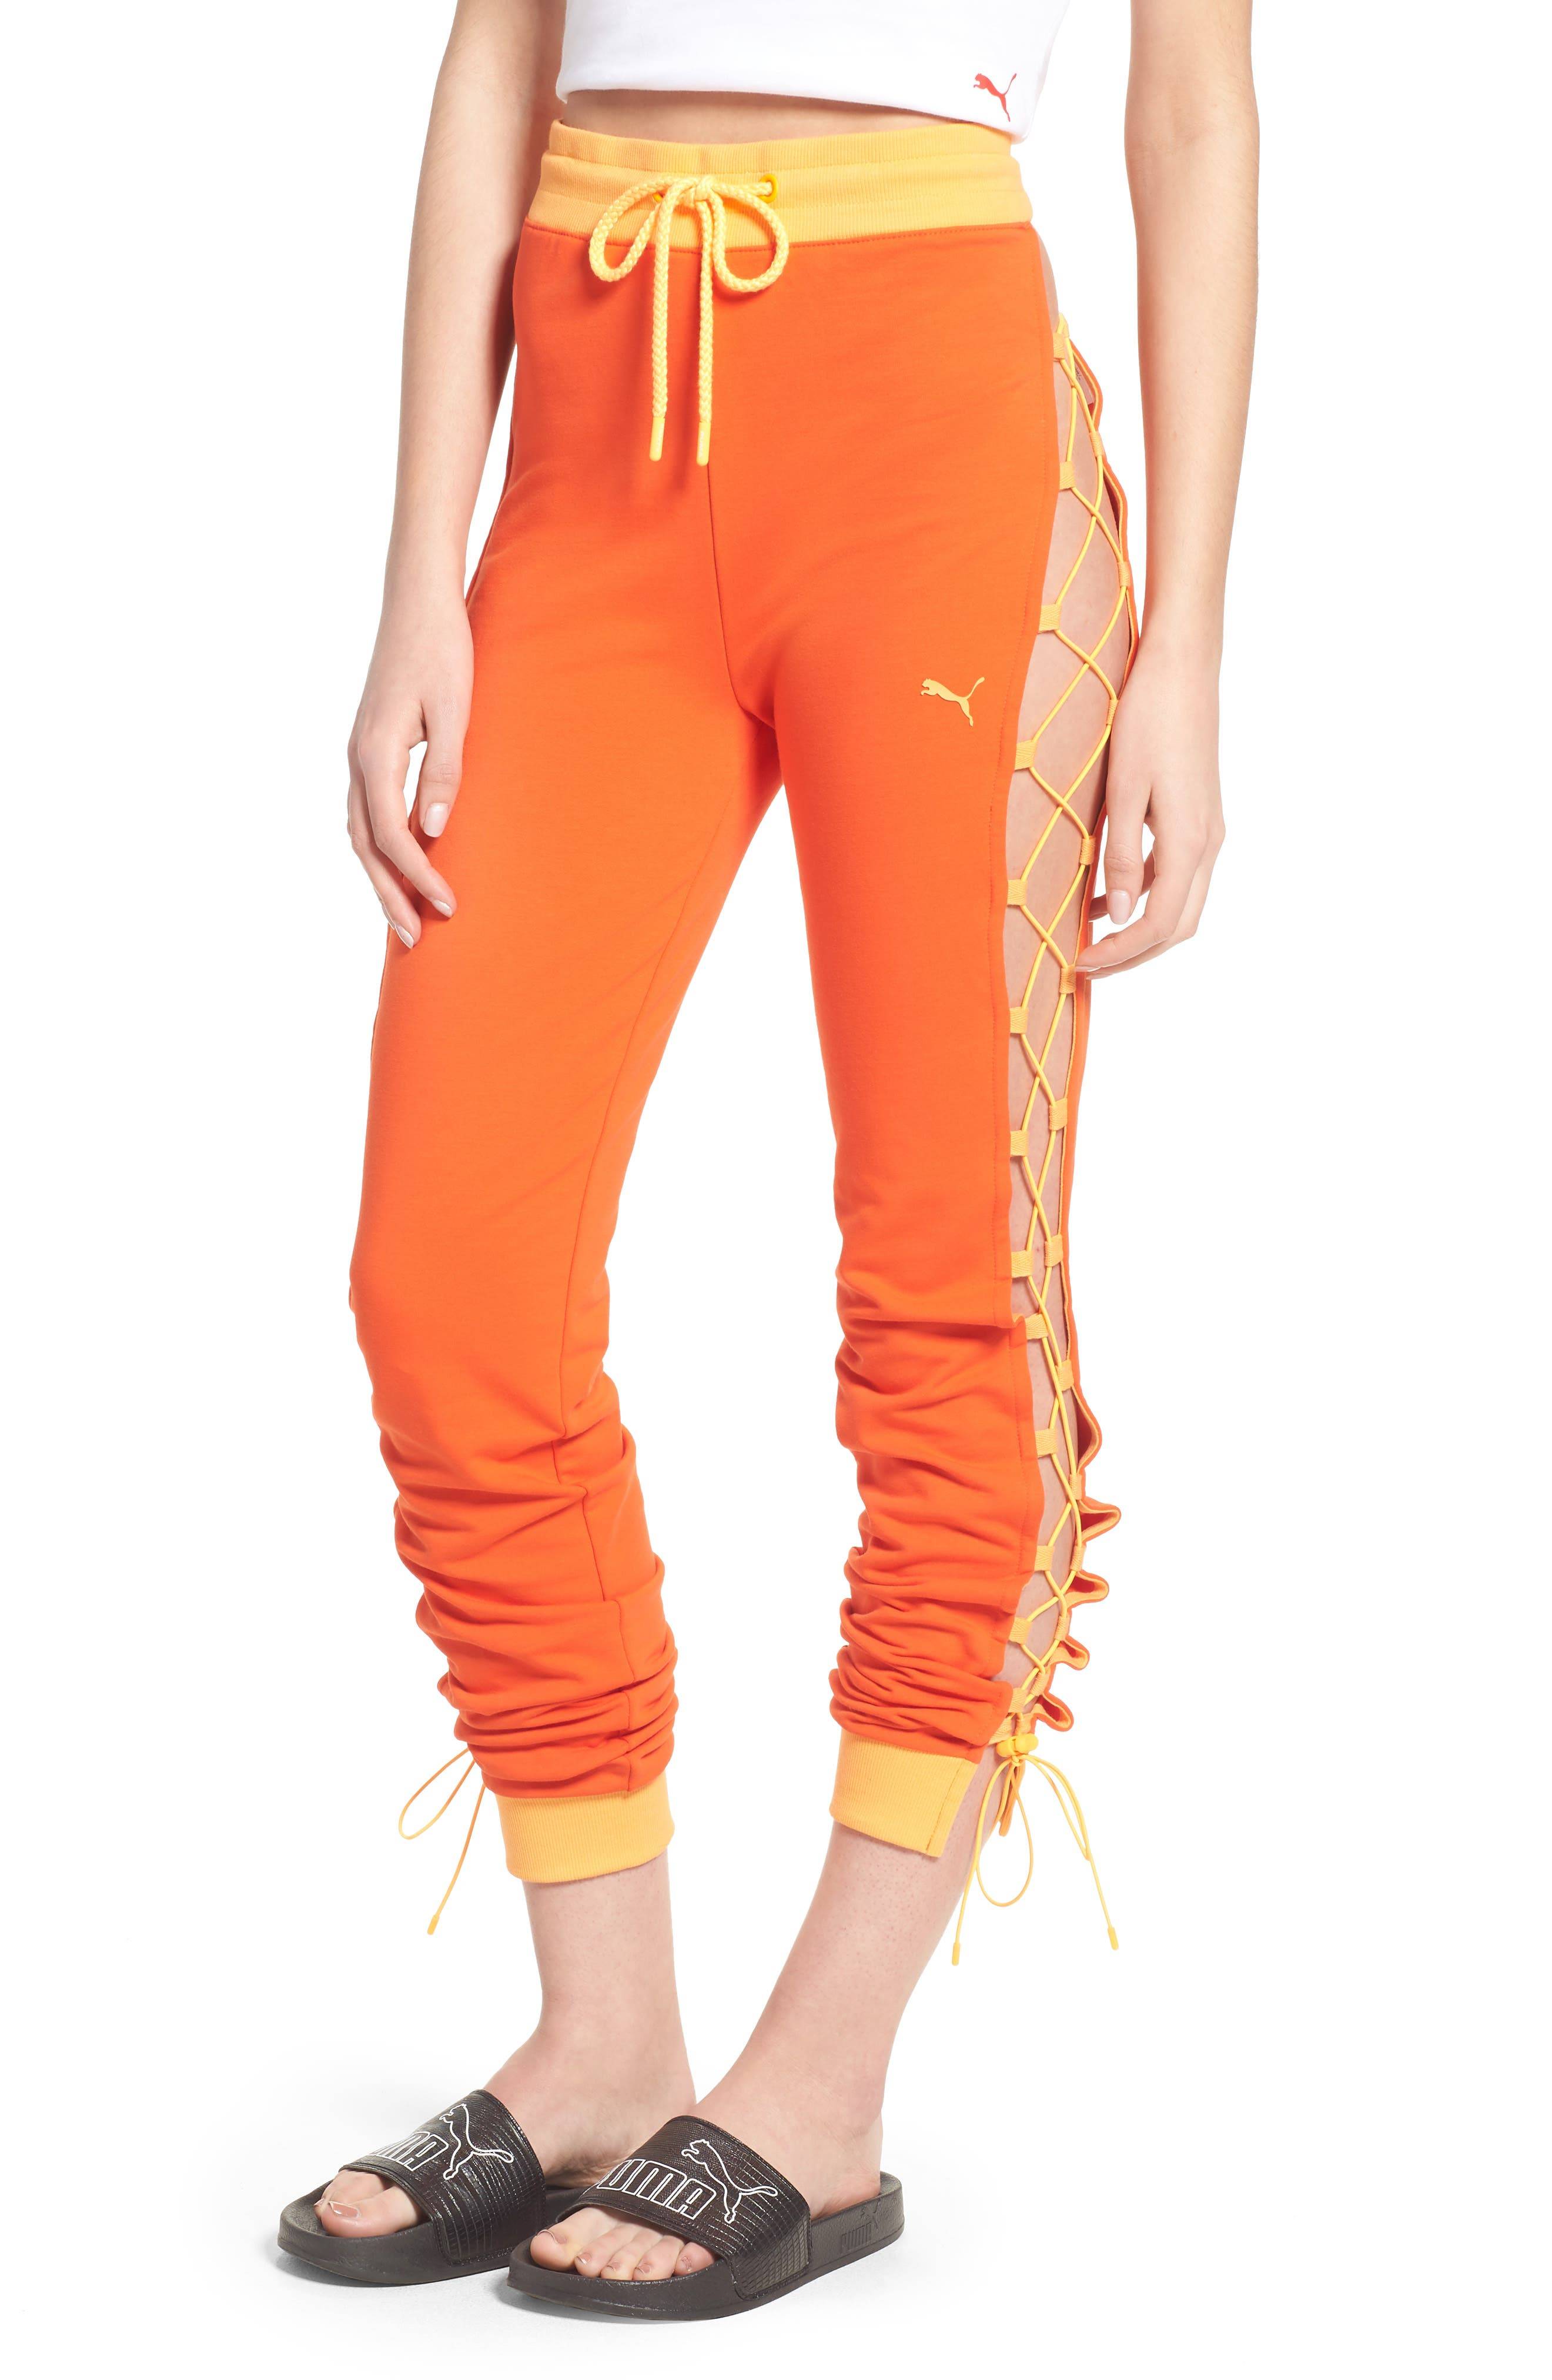 FENTY PUMA by Rihanna Laced Sweatpants